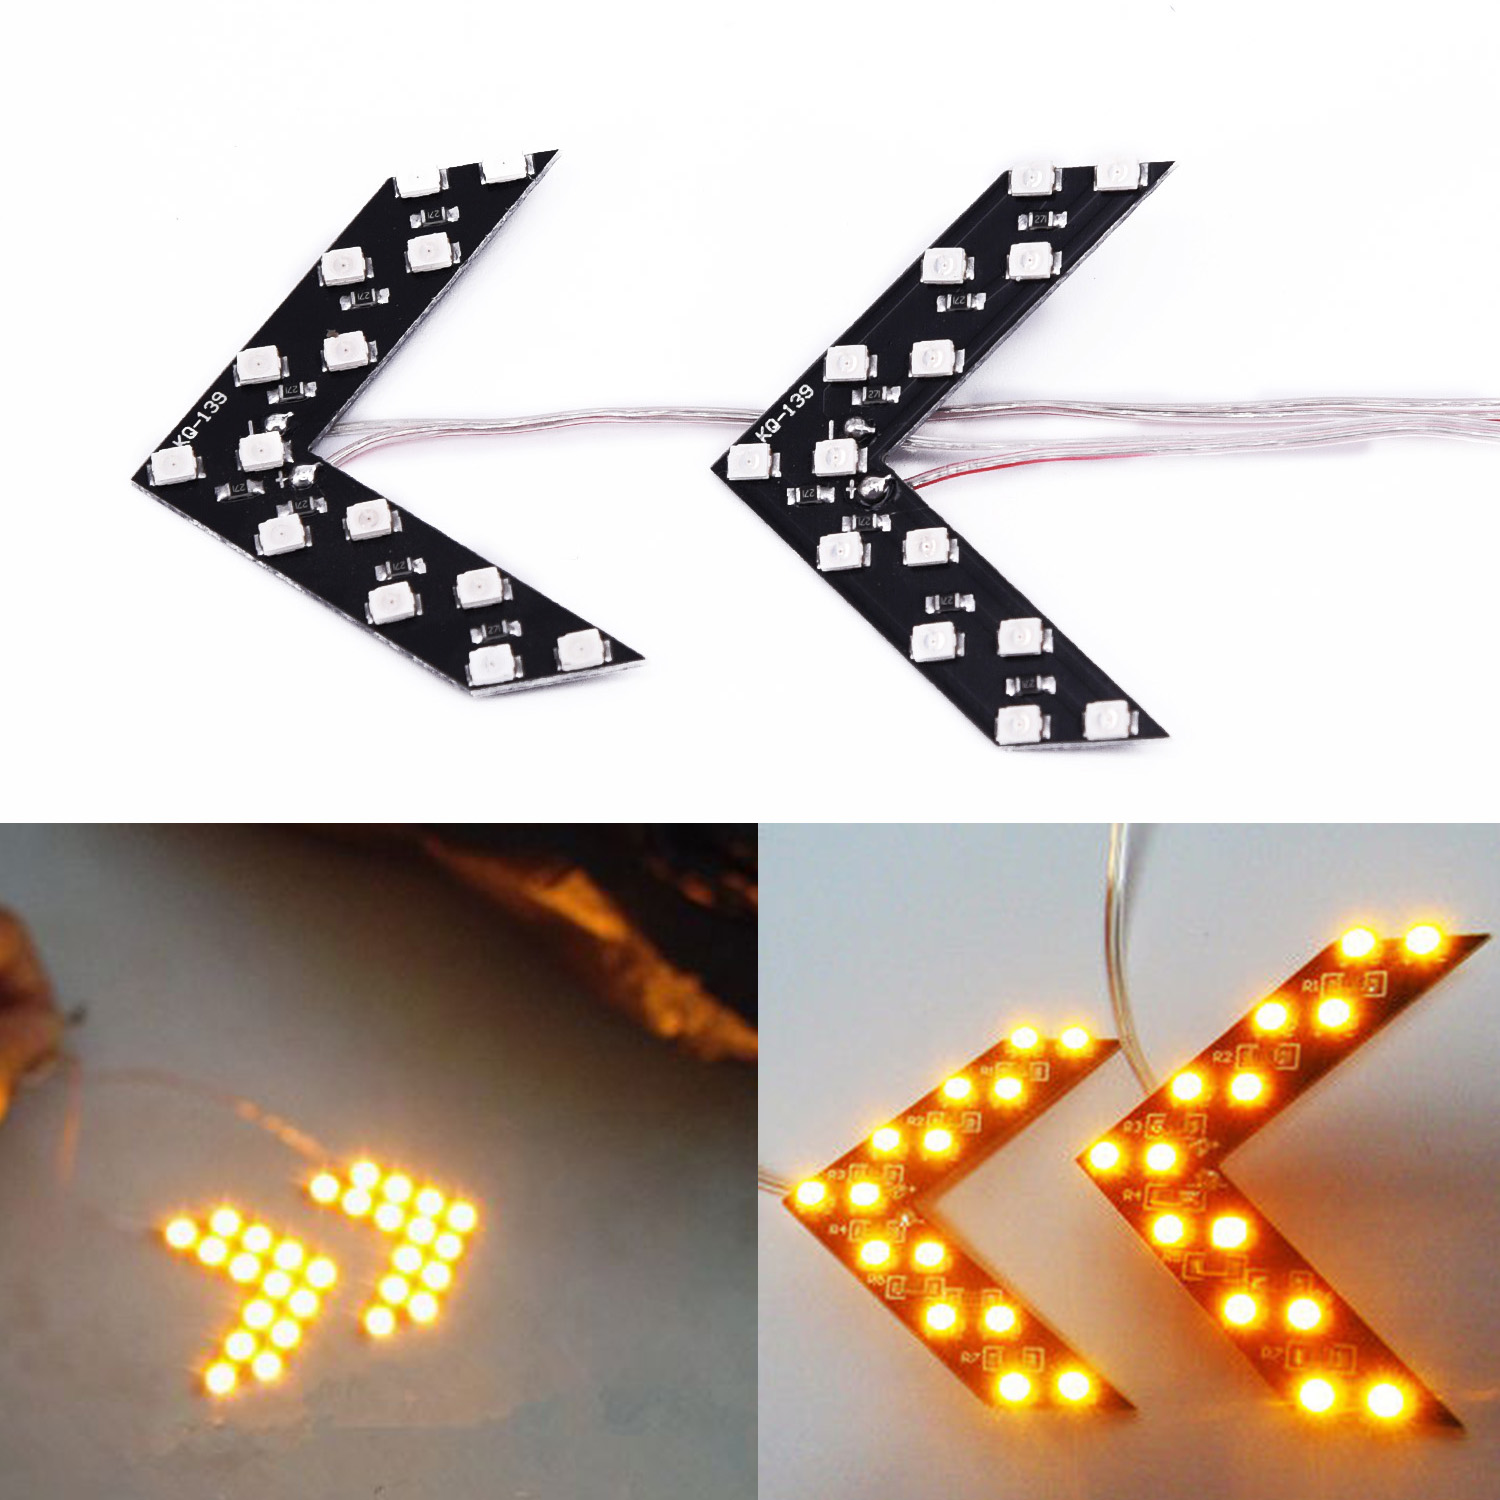 2pcs Car Truck LED Arrow Light Yellow 12V 5.5*4cm Side Rear View 14SMD  Mirror Indicator Turn Signal Brake Light